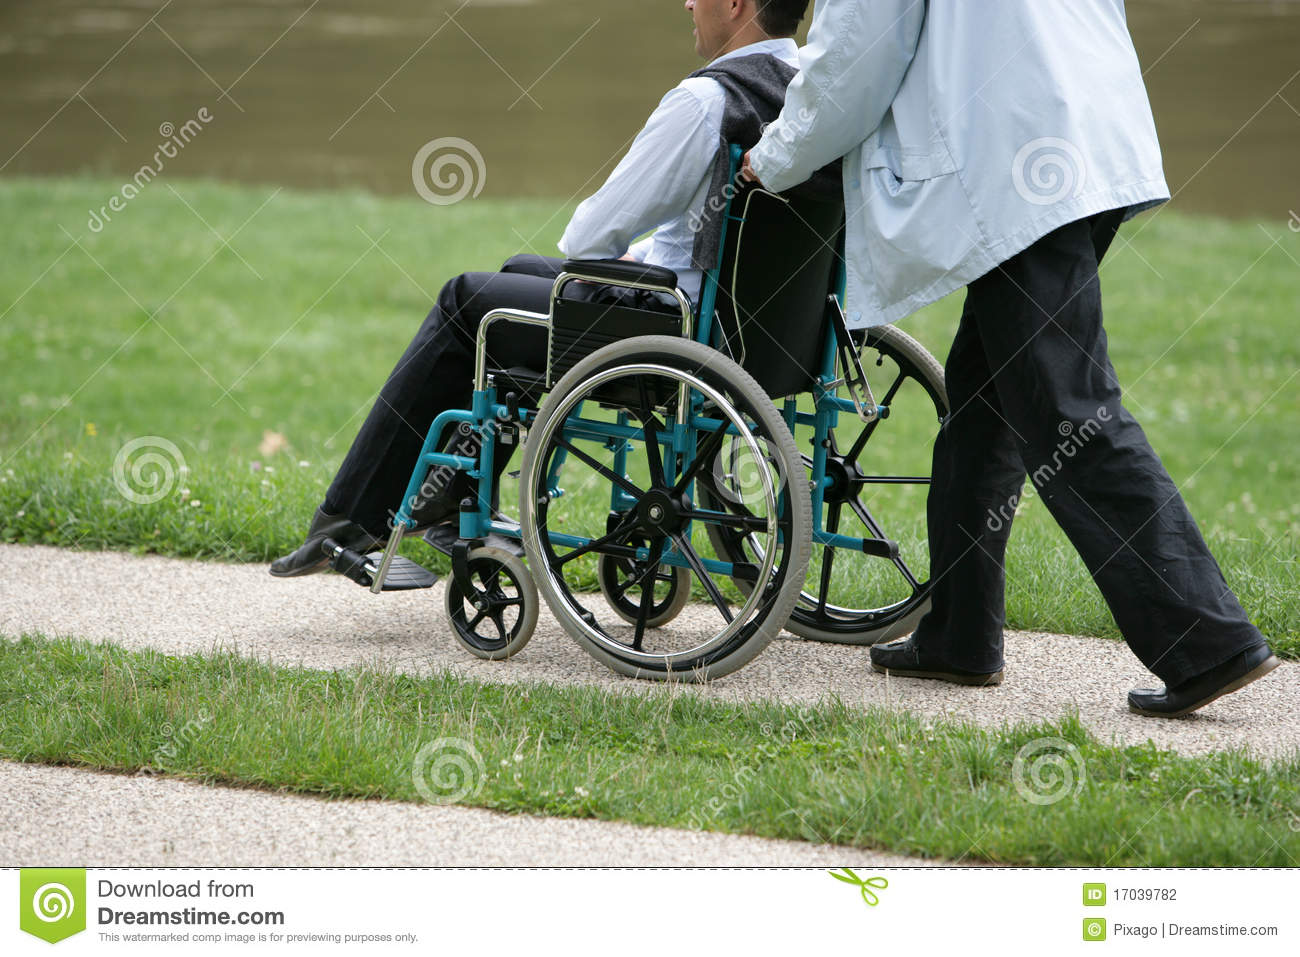 disability and disabled person This page is designed to answer frequently asked questions on the housing rights of people with disabilities and the responsibilities of housing providers and building and design professionals under federal law.